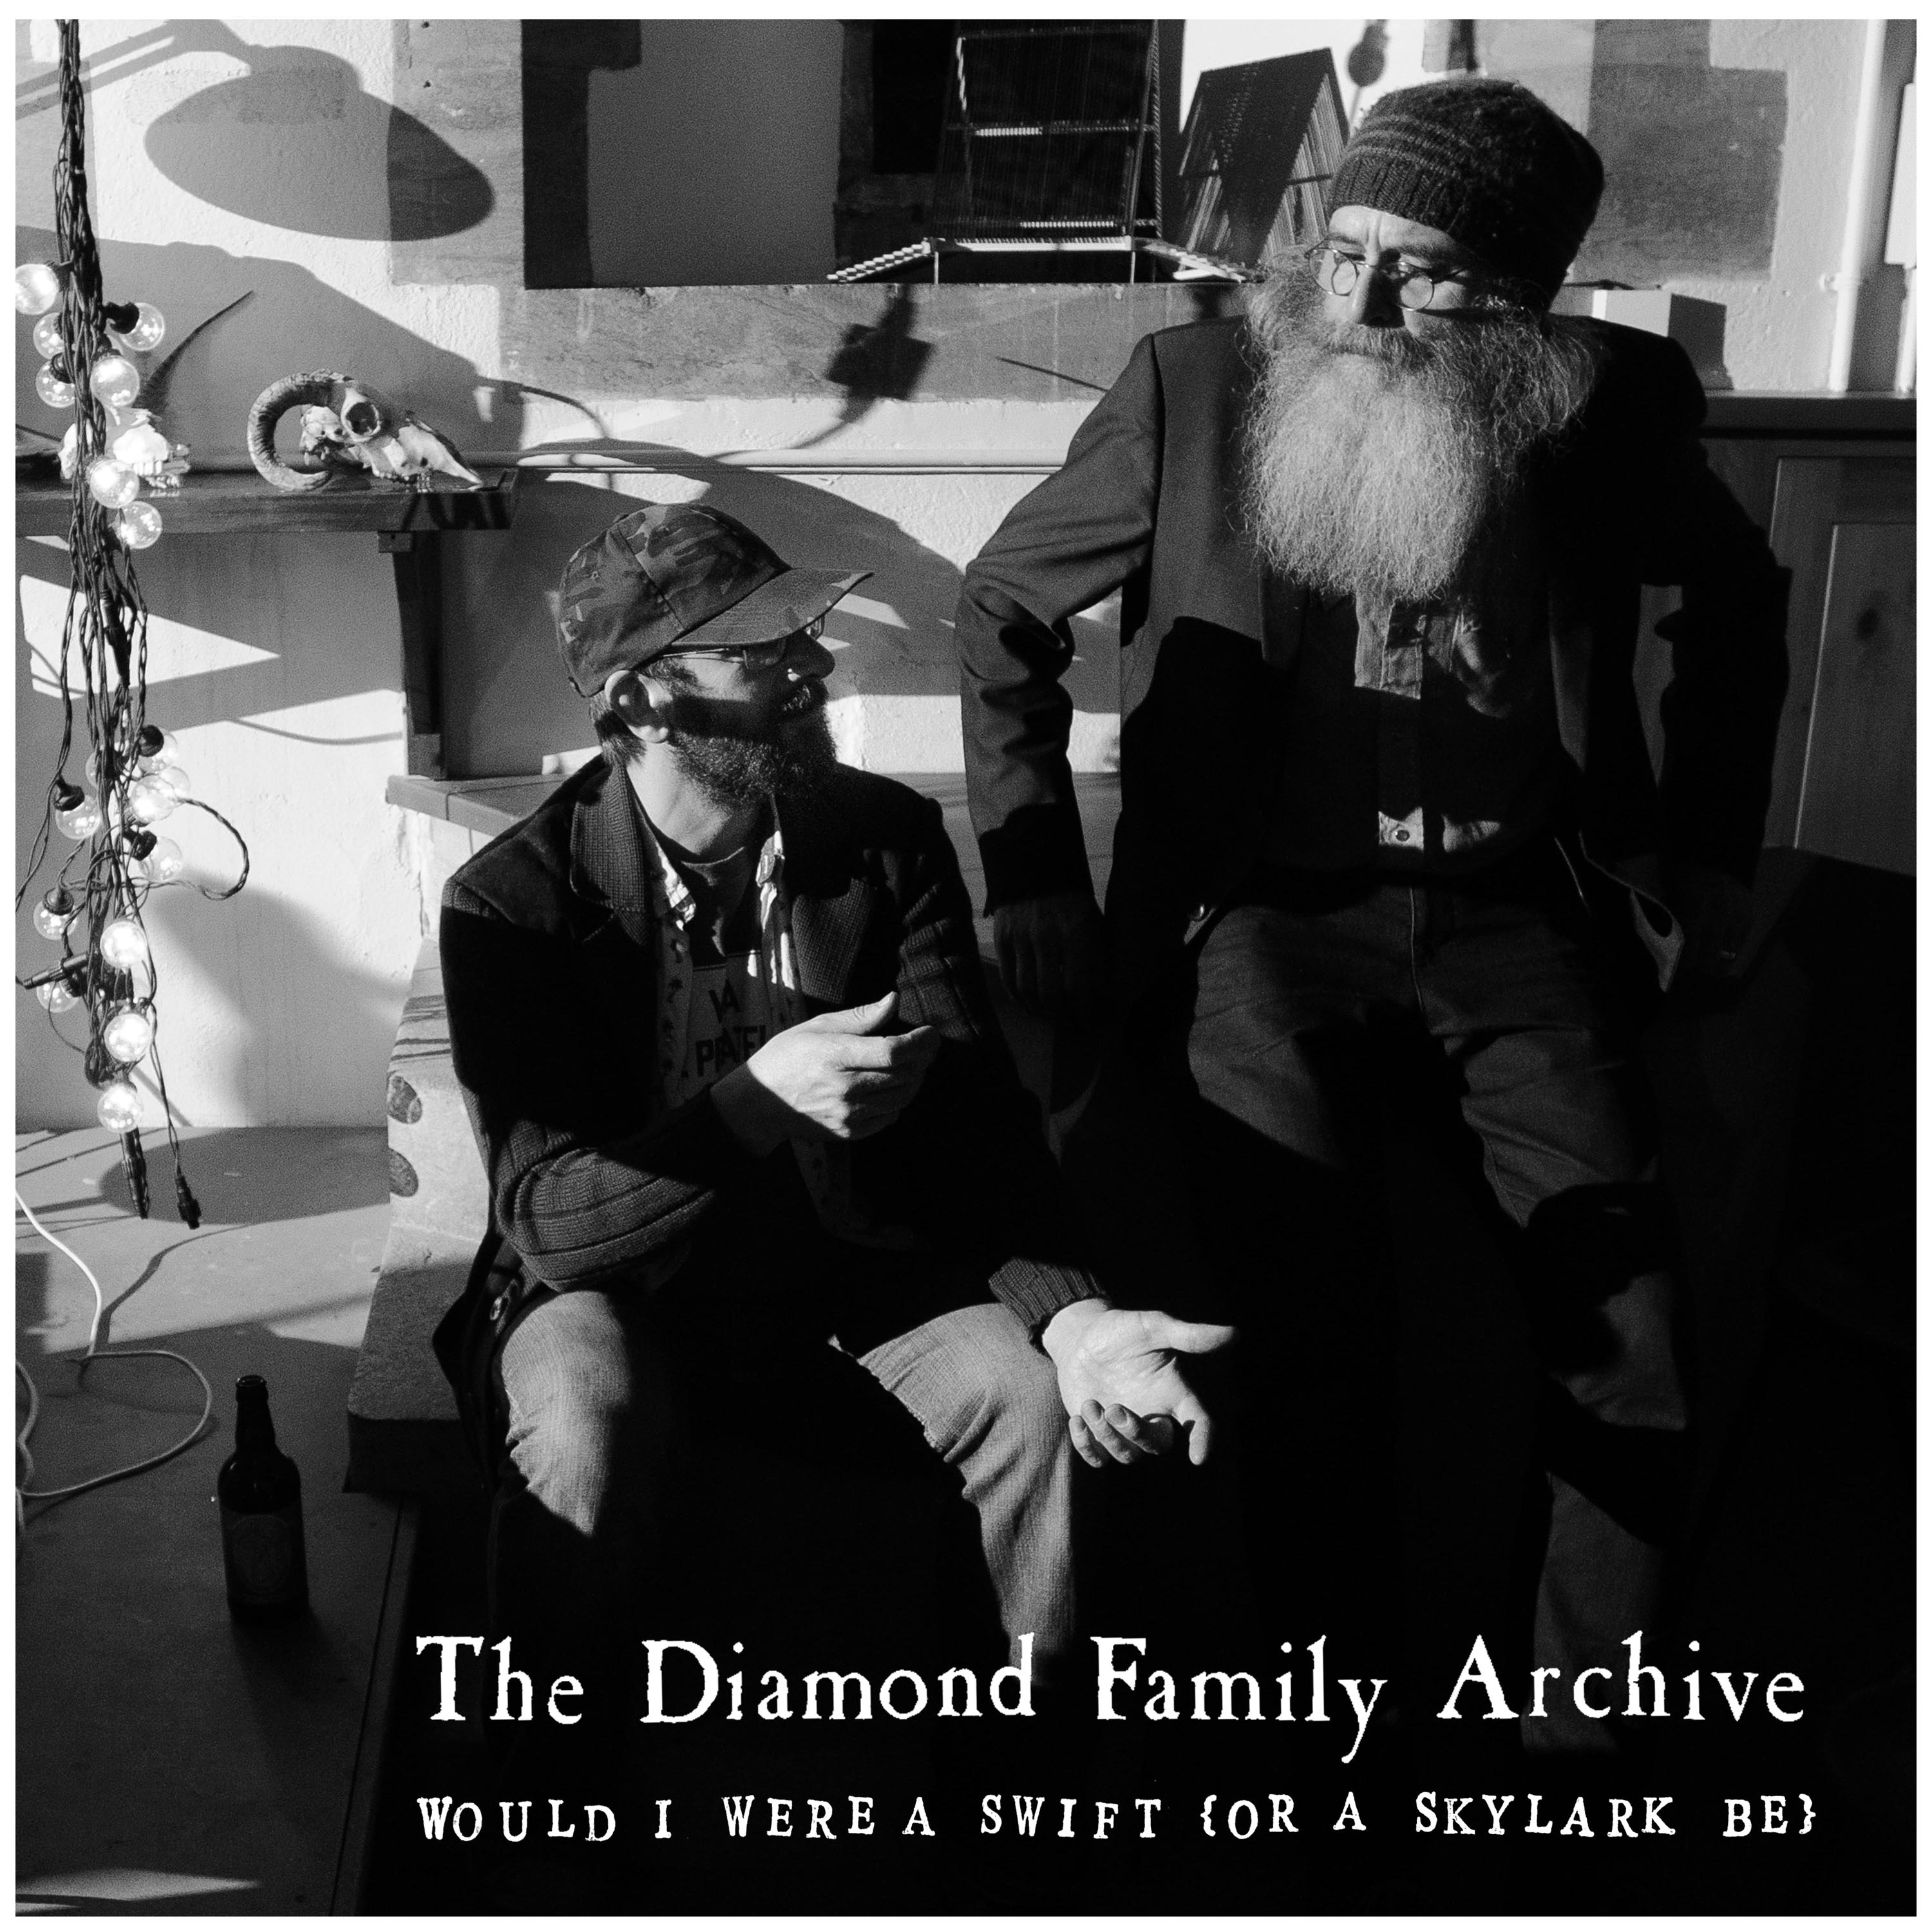 The Diamond Family Archive - Would I Were A Swift Album Cover